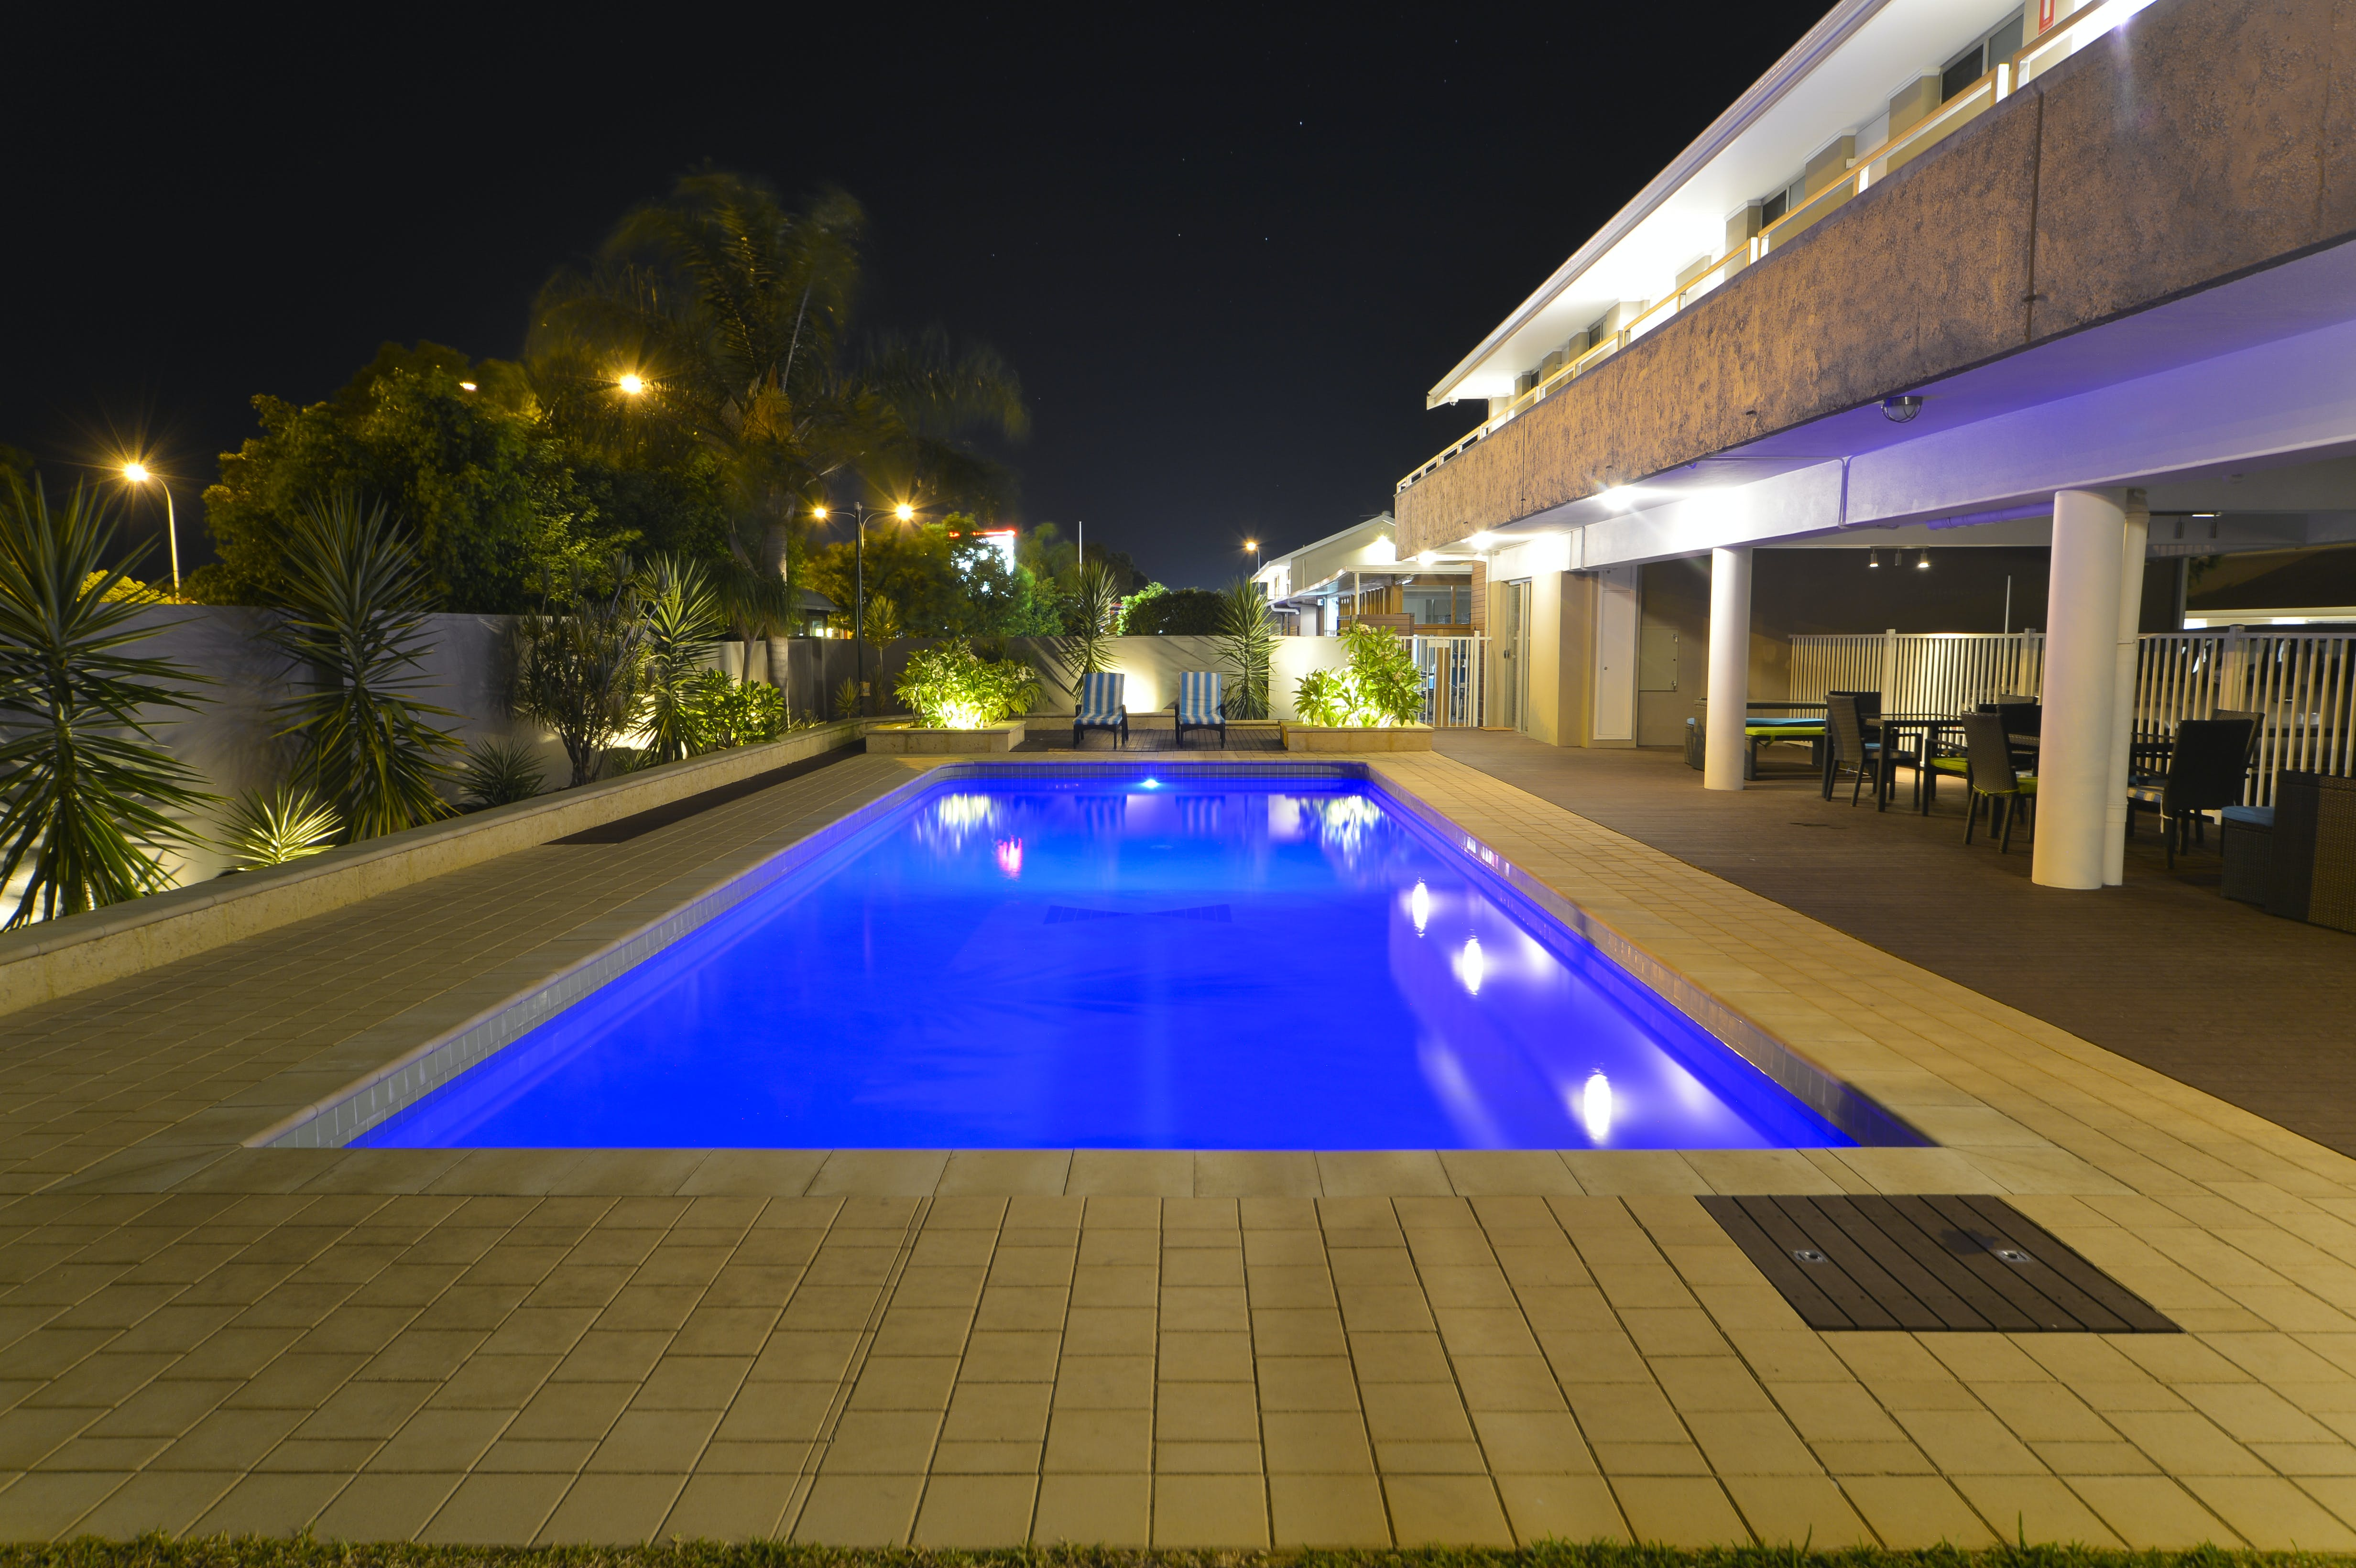 Swimming pool facilities at the Bentley Motel Perth